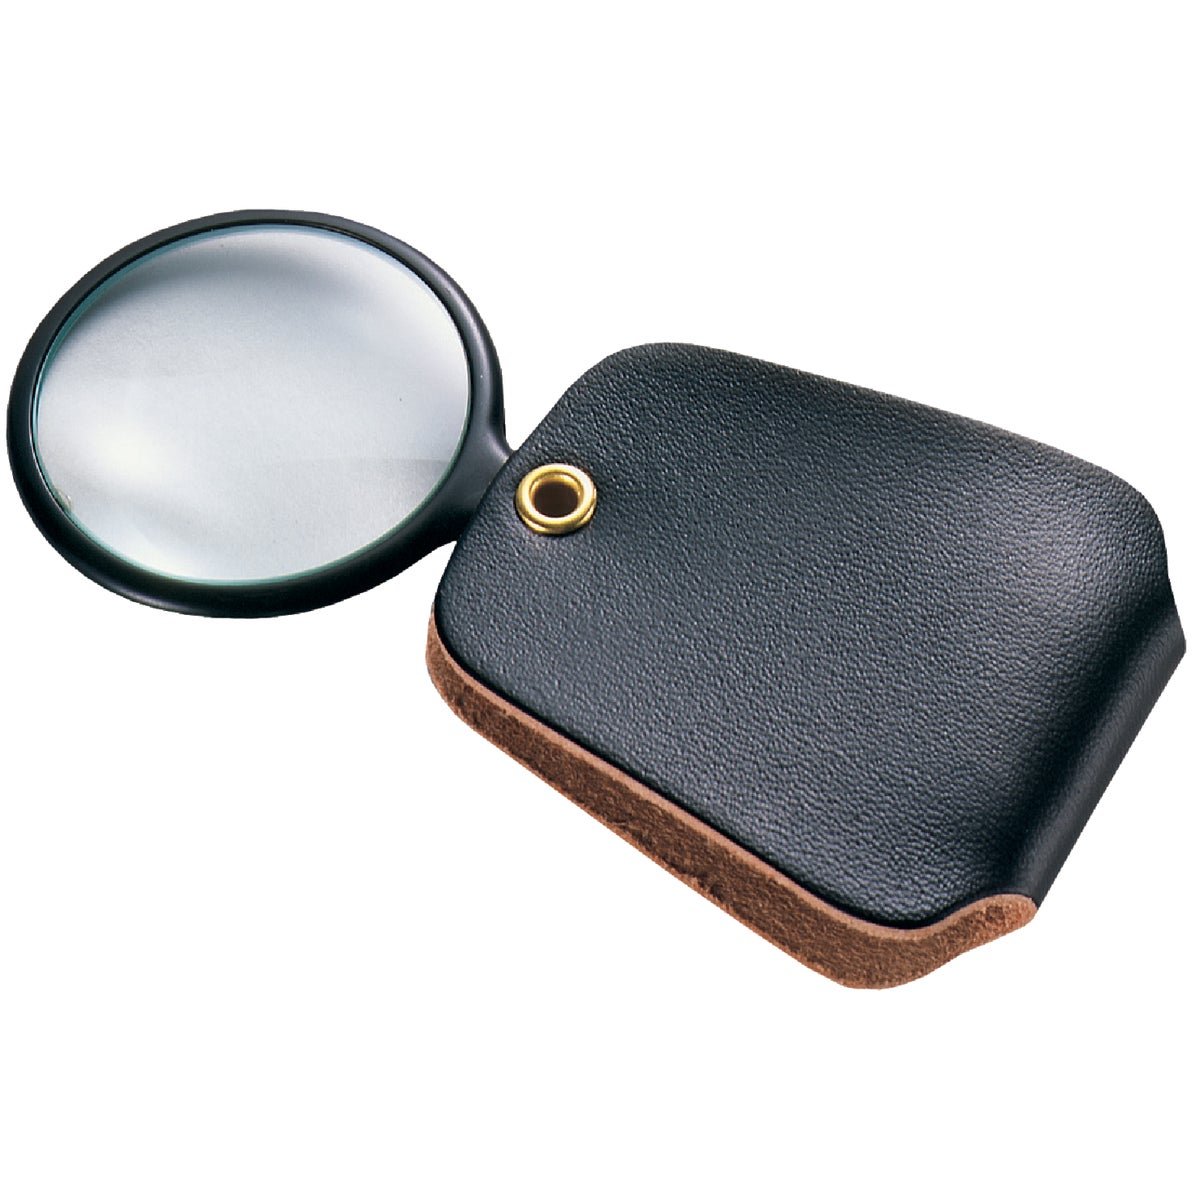 2.5X MAGNIFIER - 532 by Gen Tools Mfg